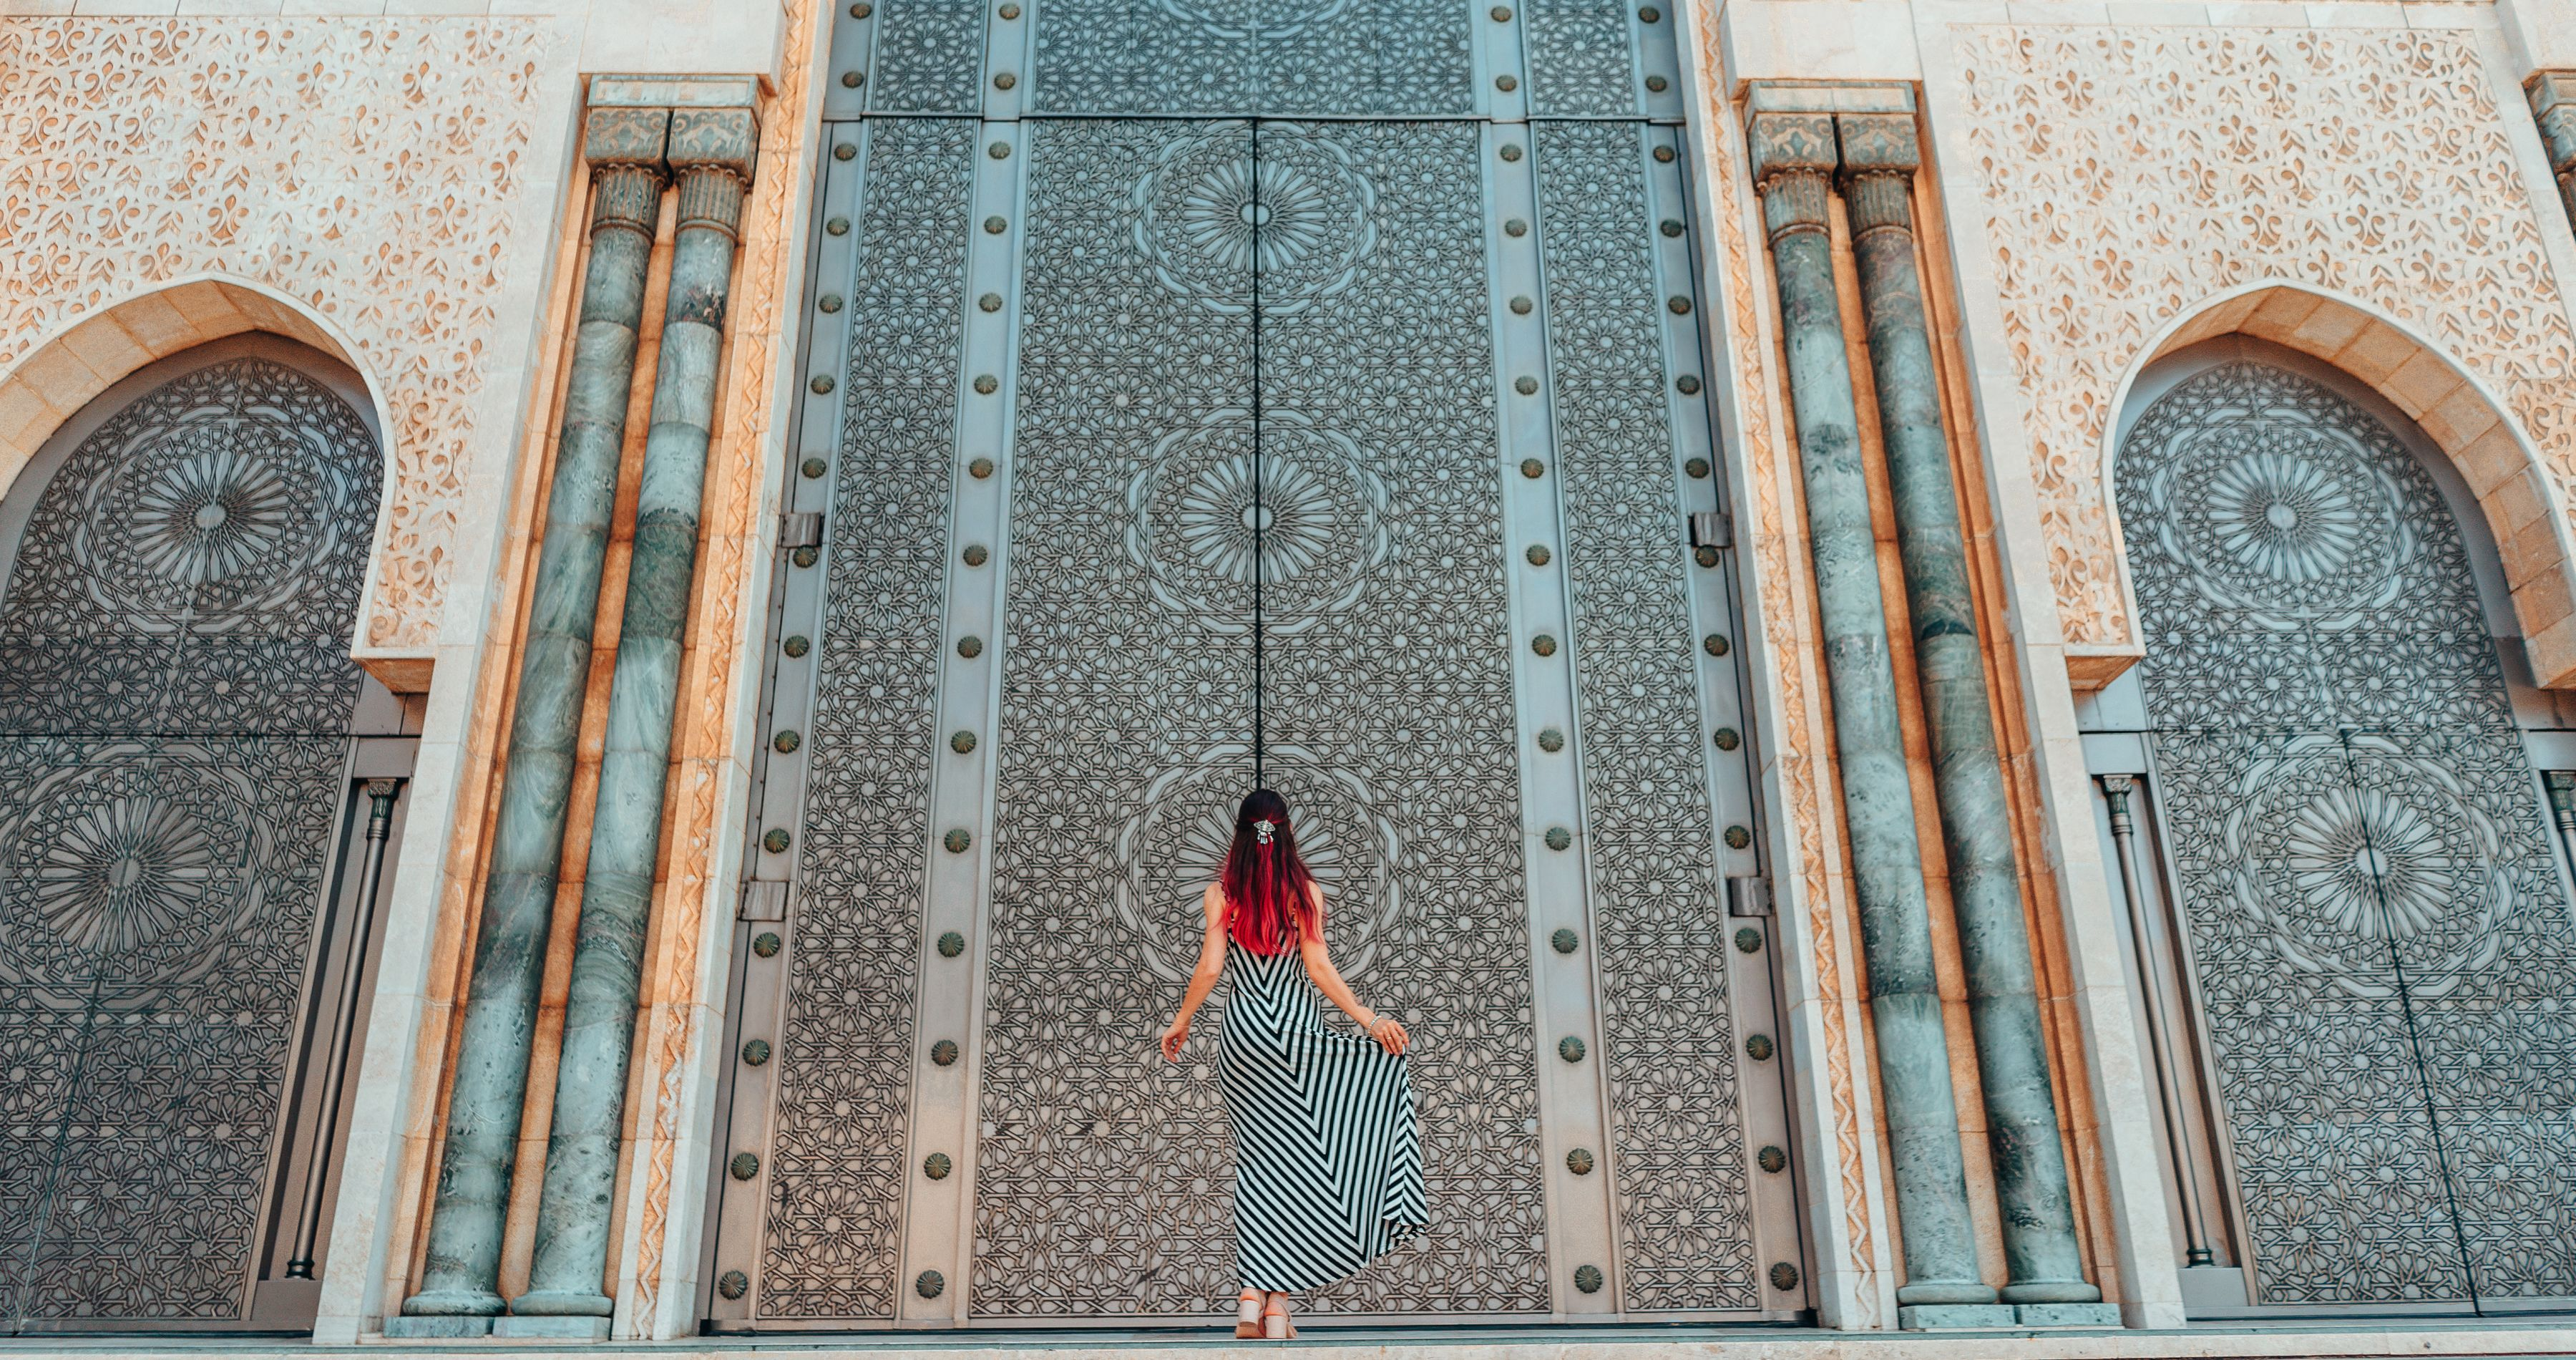 Morocco travel guide - Girls standing in front of greatest mosque Hasan II in Morocco, Africa